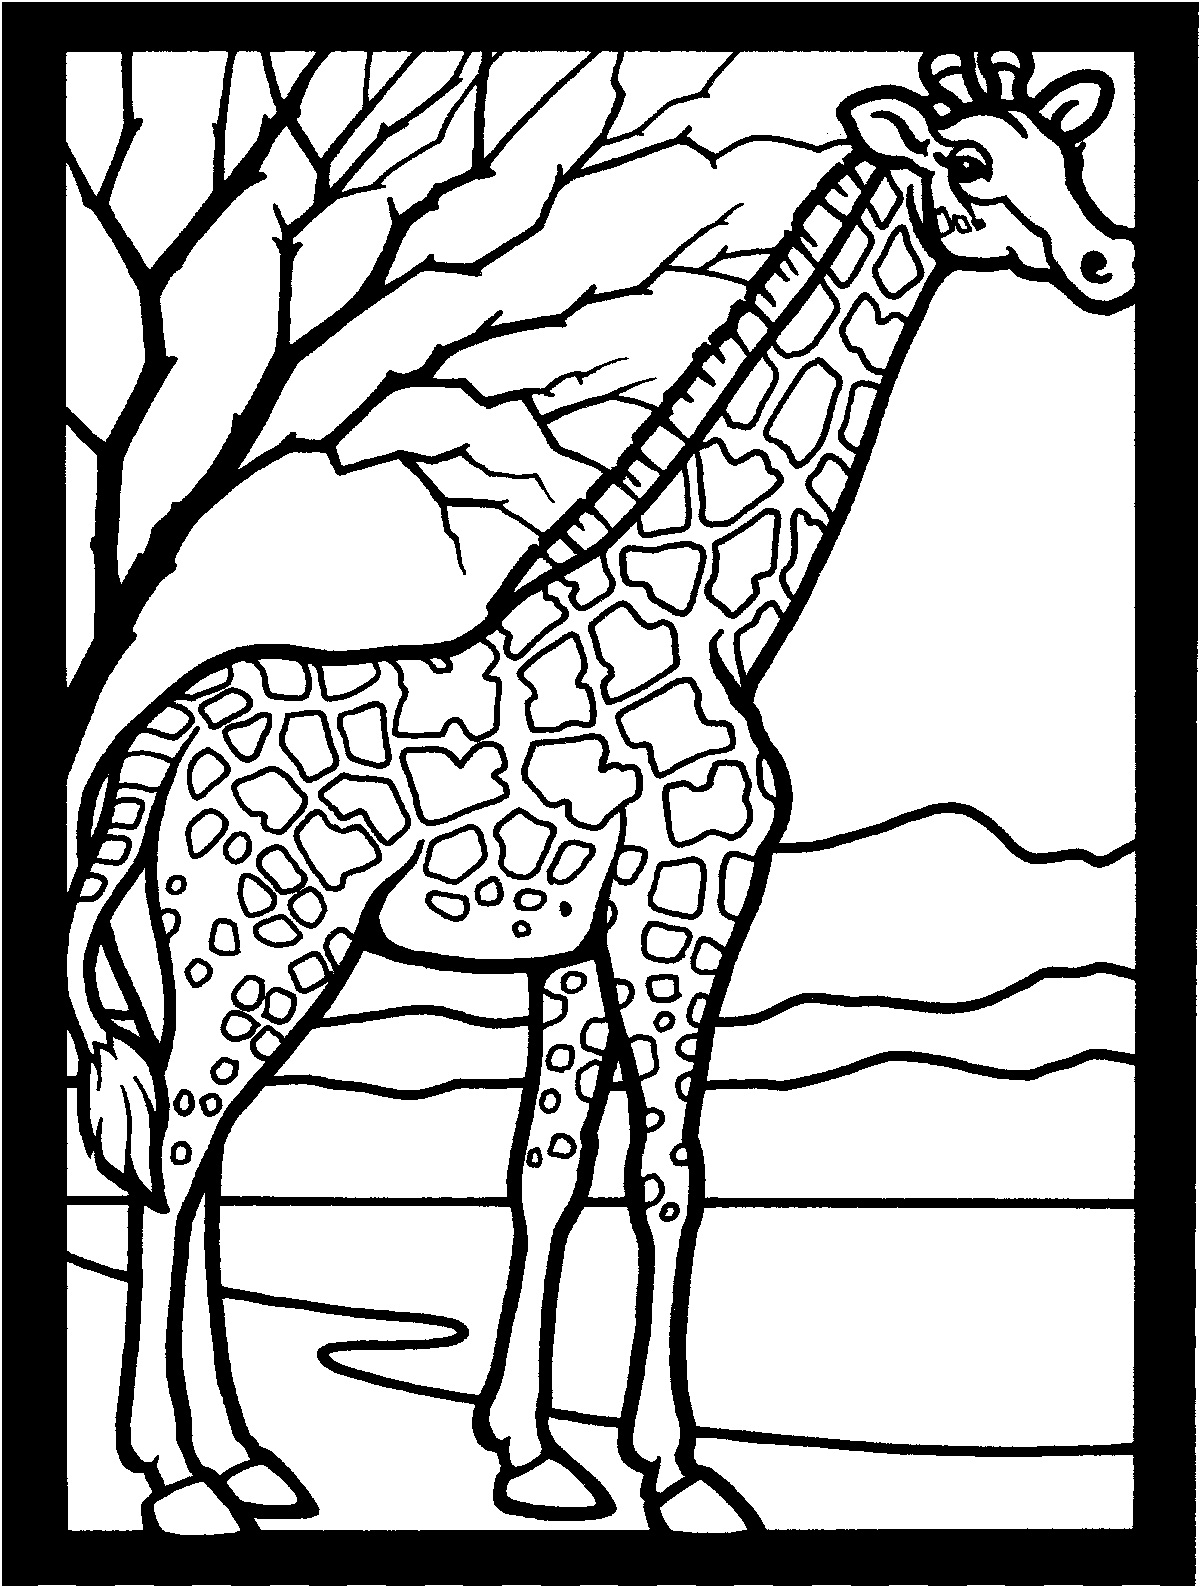 coloring page of a book - free printable giraffe coloring pages for kids